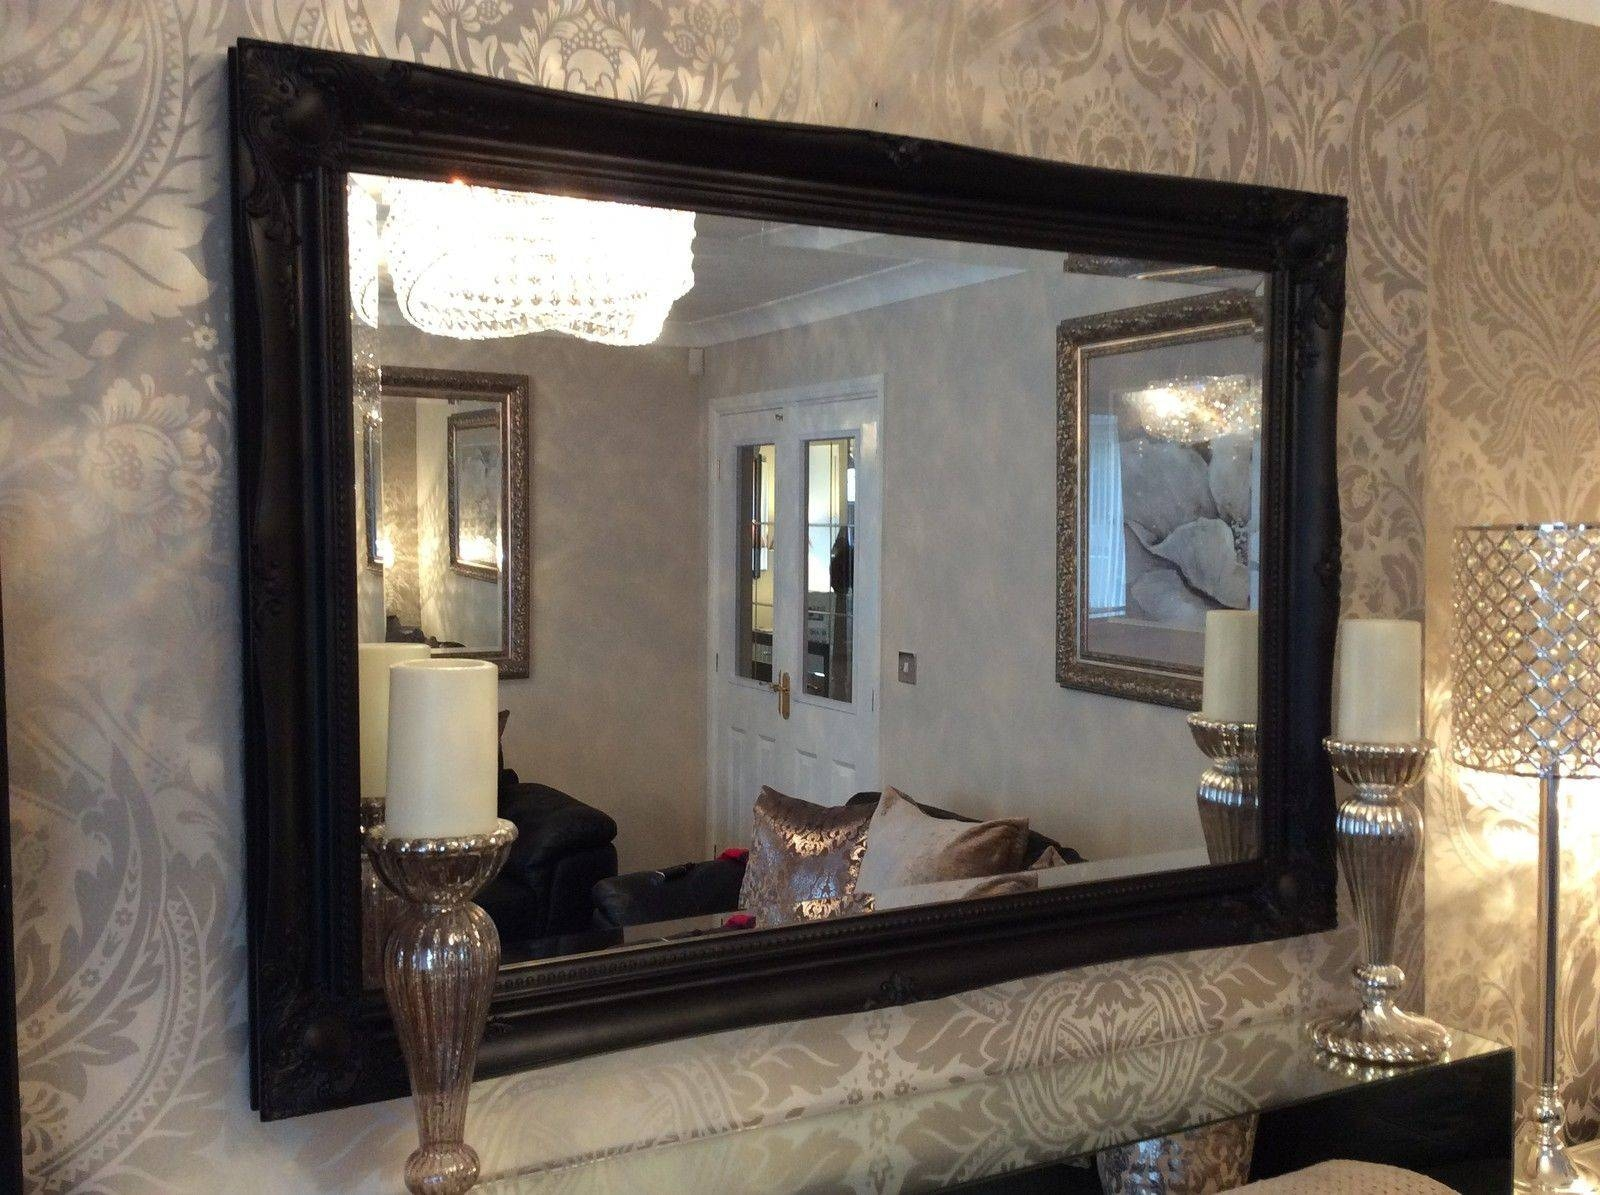 New Large Black Shabby Chic Bevelled Wall Mirror - 36Inch X 26Inch within Black Large Mirrors (Image 15 of 15)